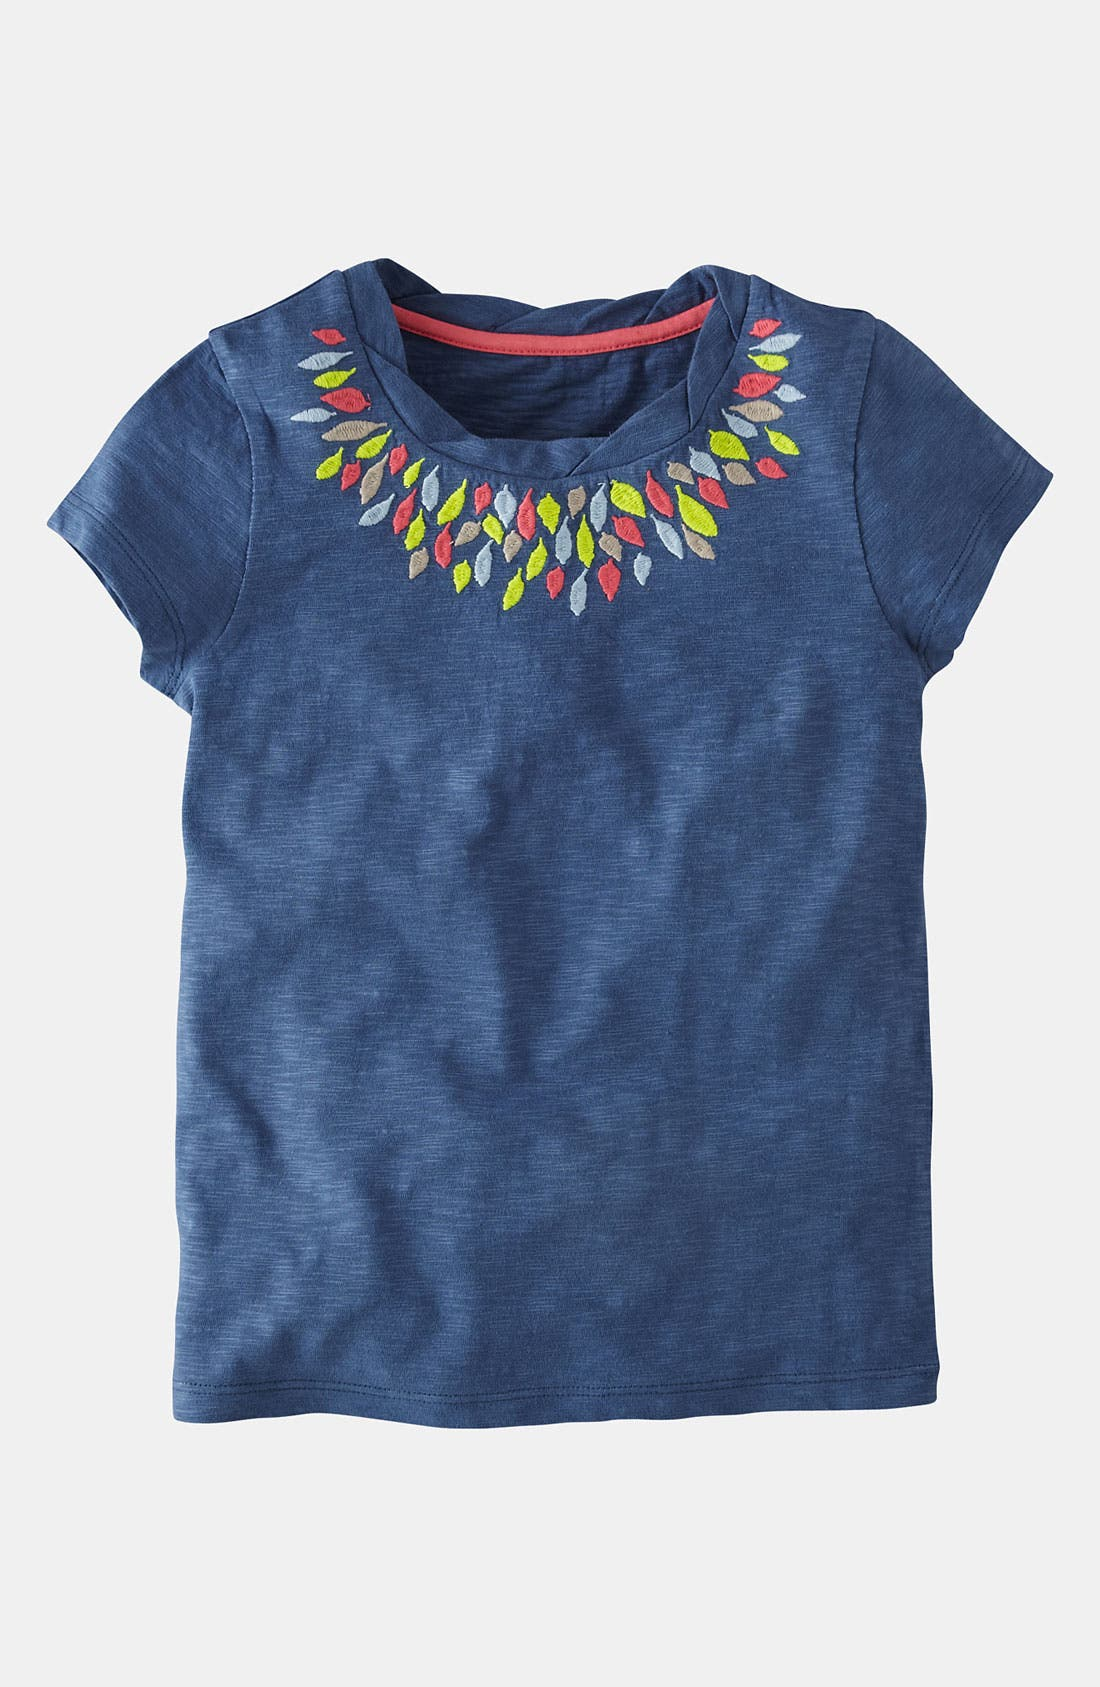 Main Image - Mini Boden 'Pretty' Embroidered Tee (Toddler, Little Girls & Big Girls)